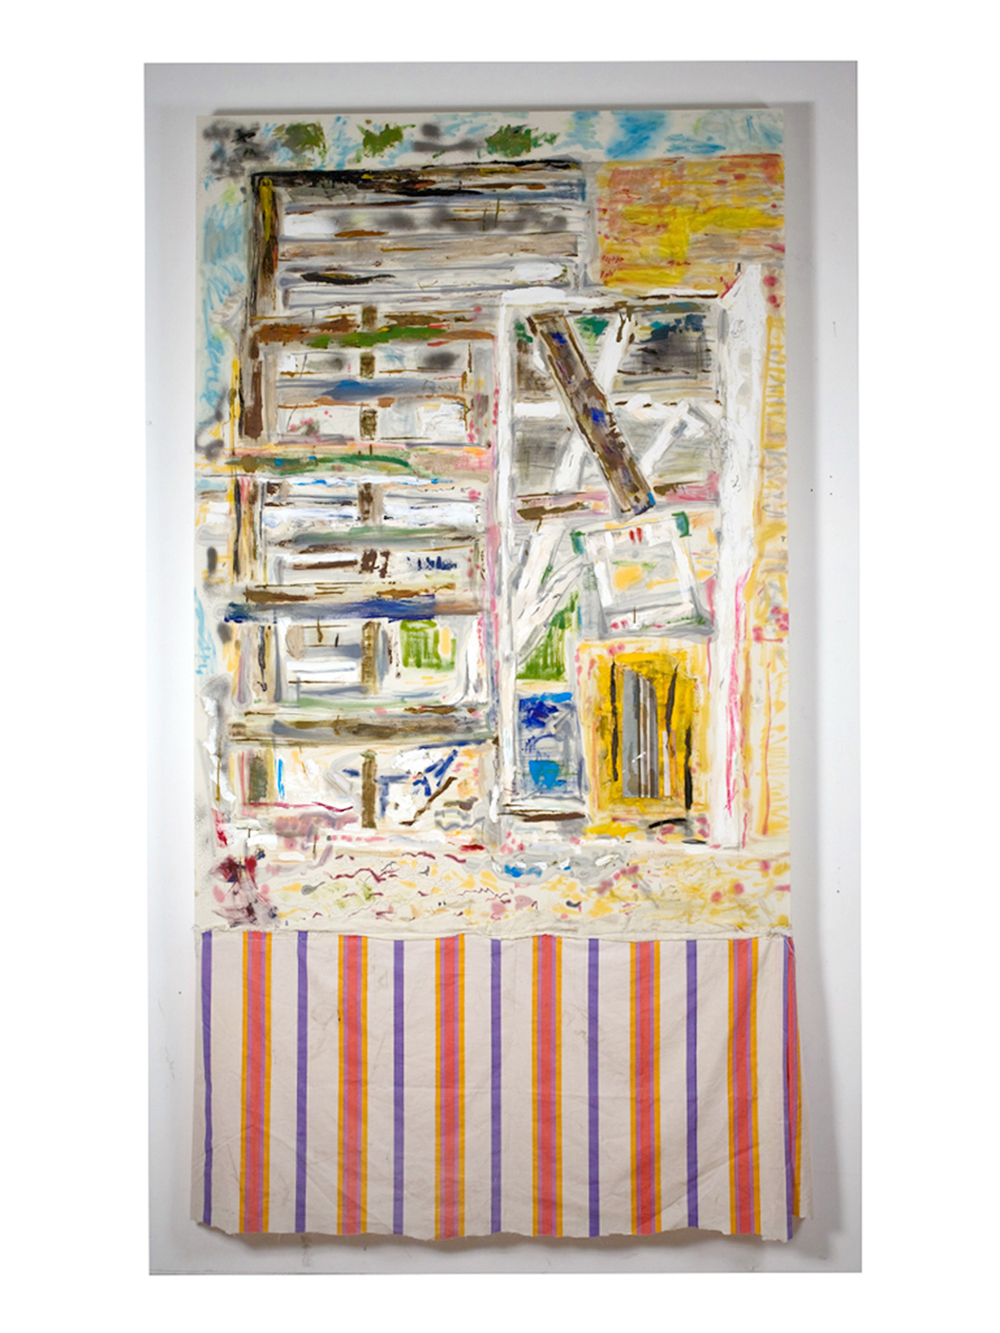 Tameka Norris   Post-Katrina Painting #7 , 2009-2010 Bedsheet, oil paint, spray paint, thread 90 x 50 inches 228.6 x 127 cm